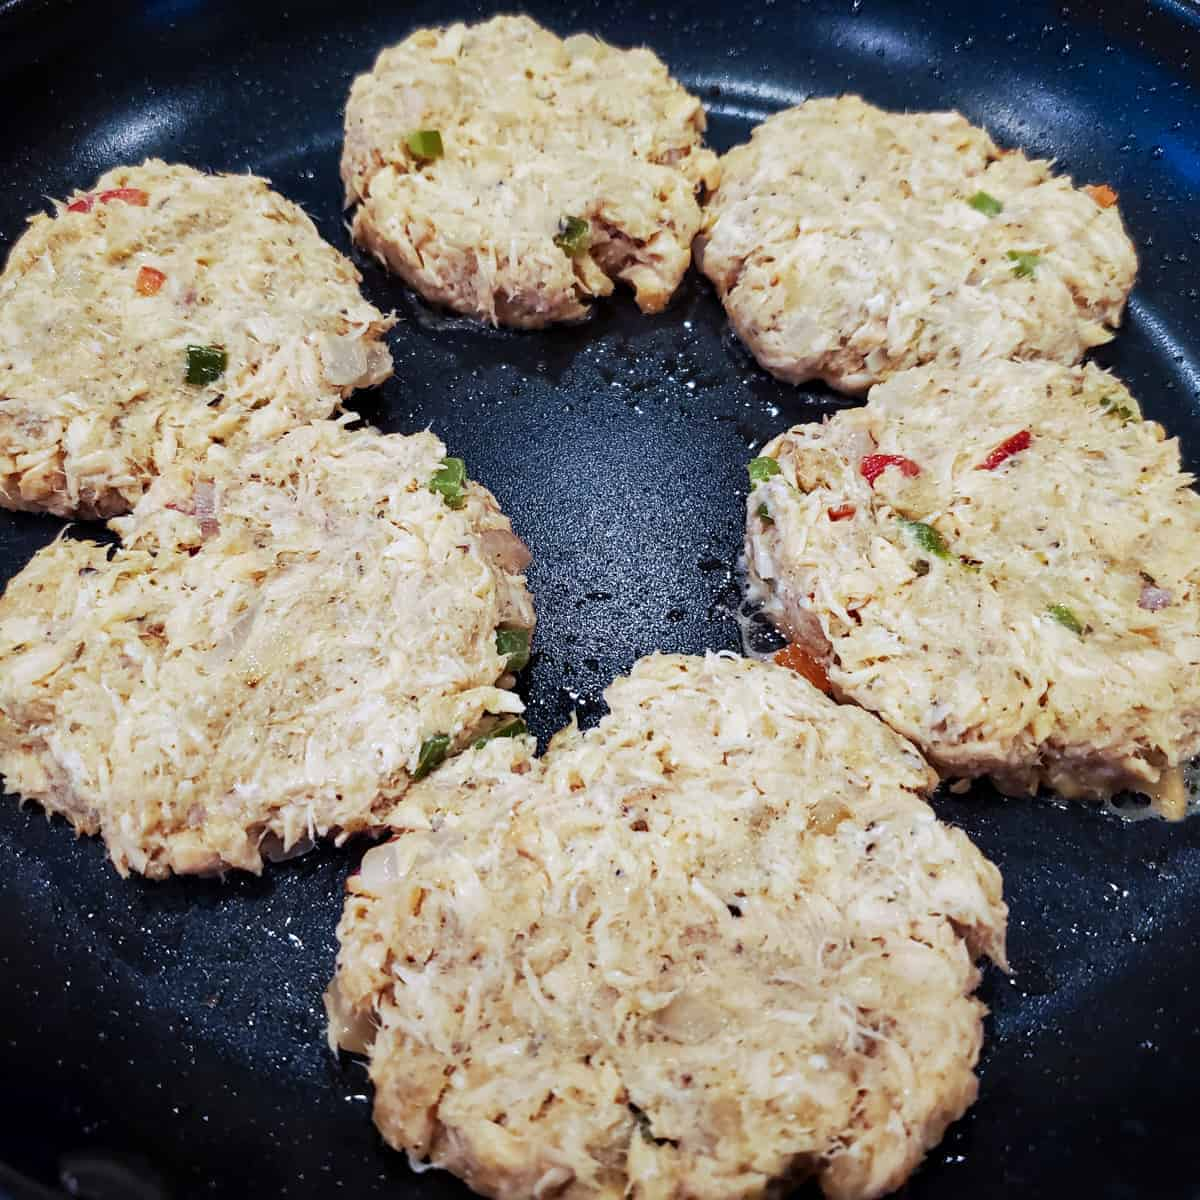 Salmon cake patties shown cooking in a large non-stick skillet